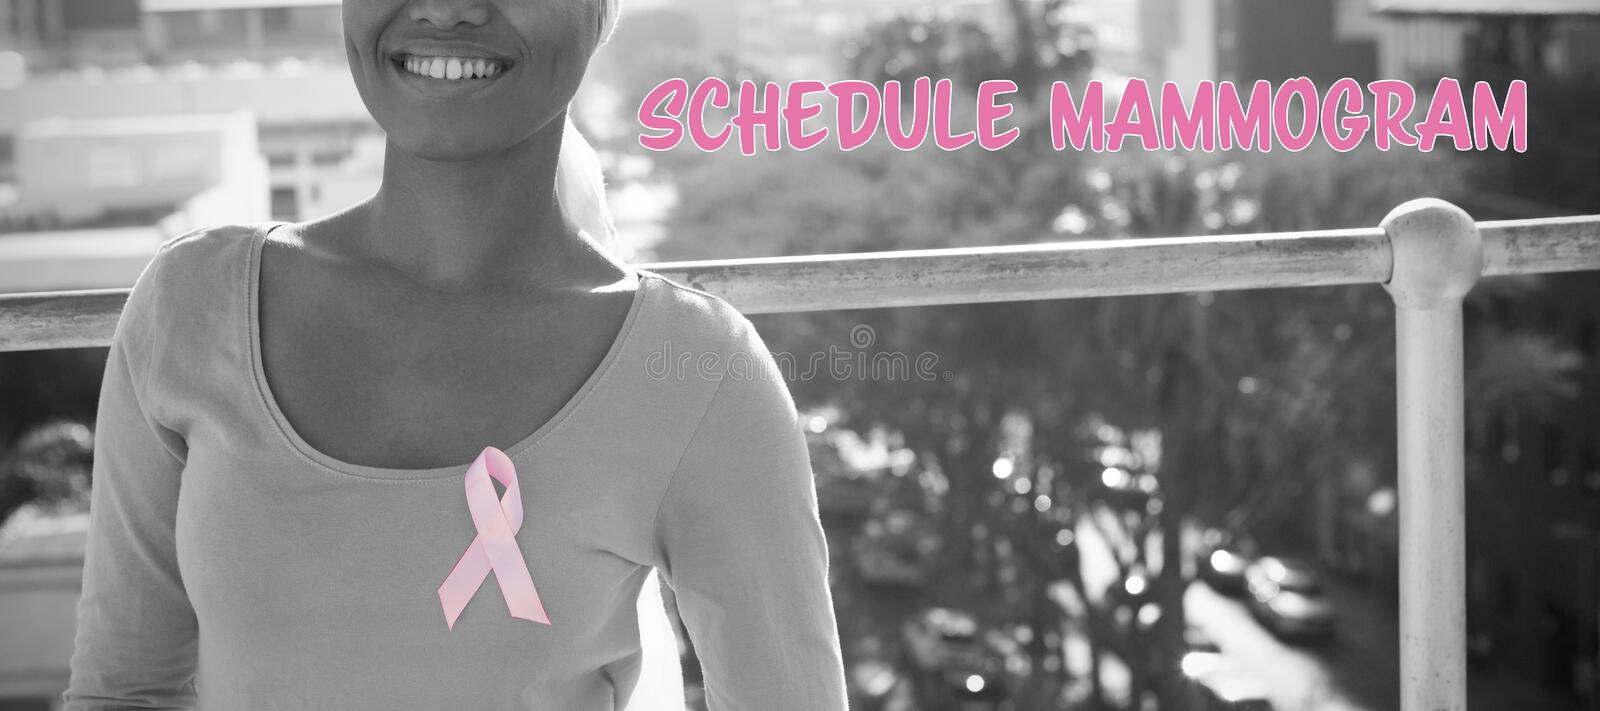 Composite image of schedule mammogram text with breast cancer awareness ribbon stock images